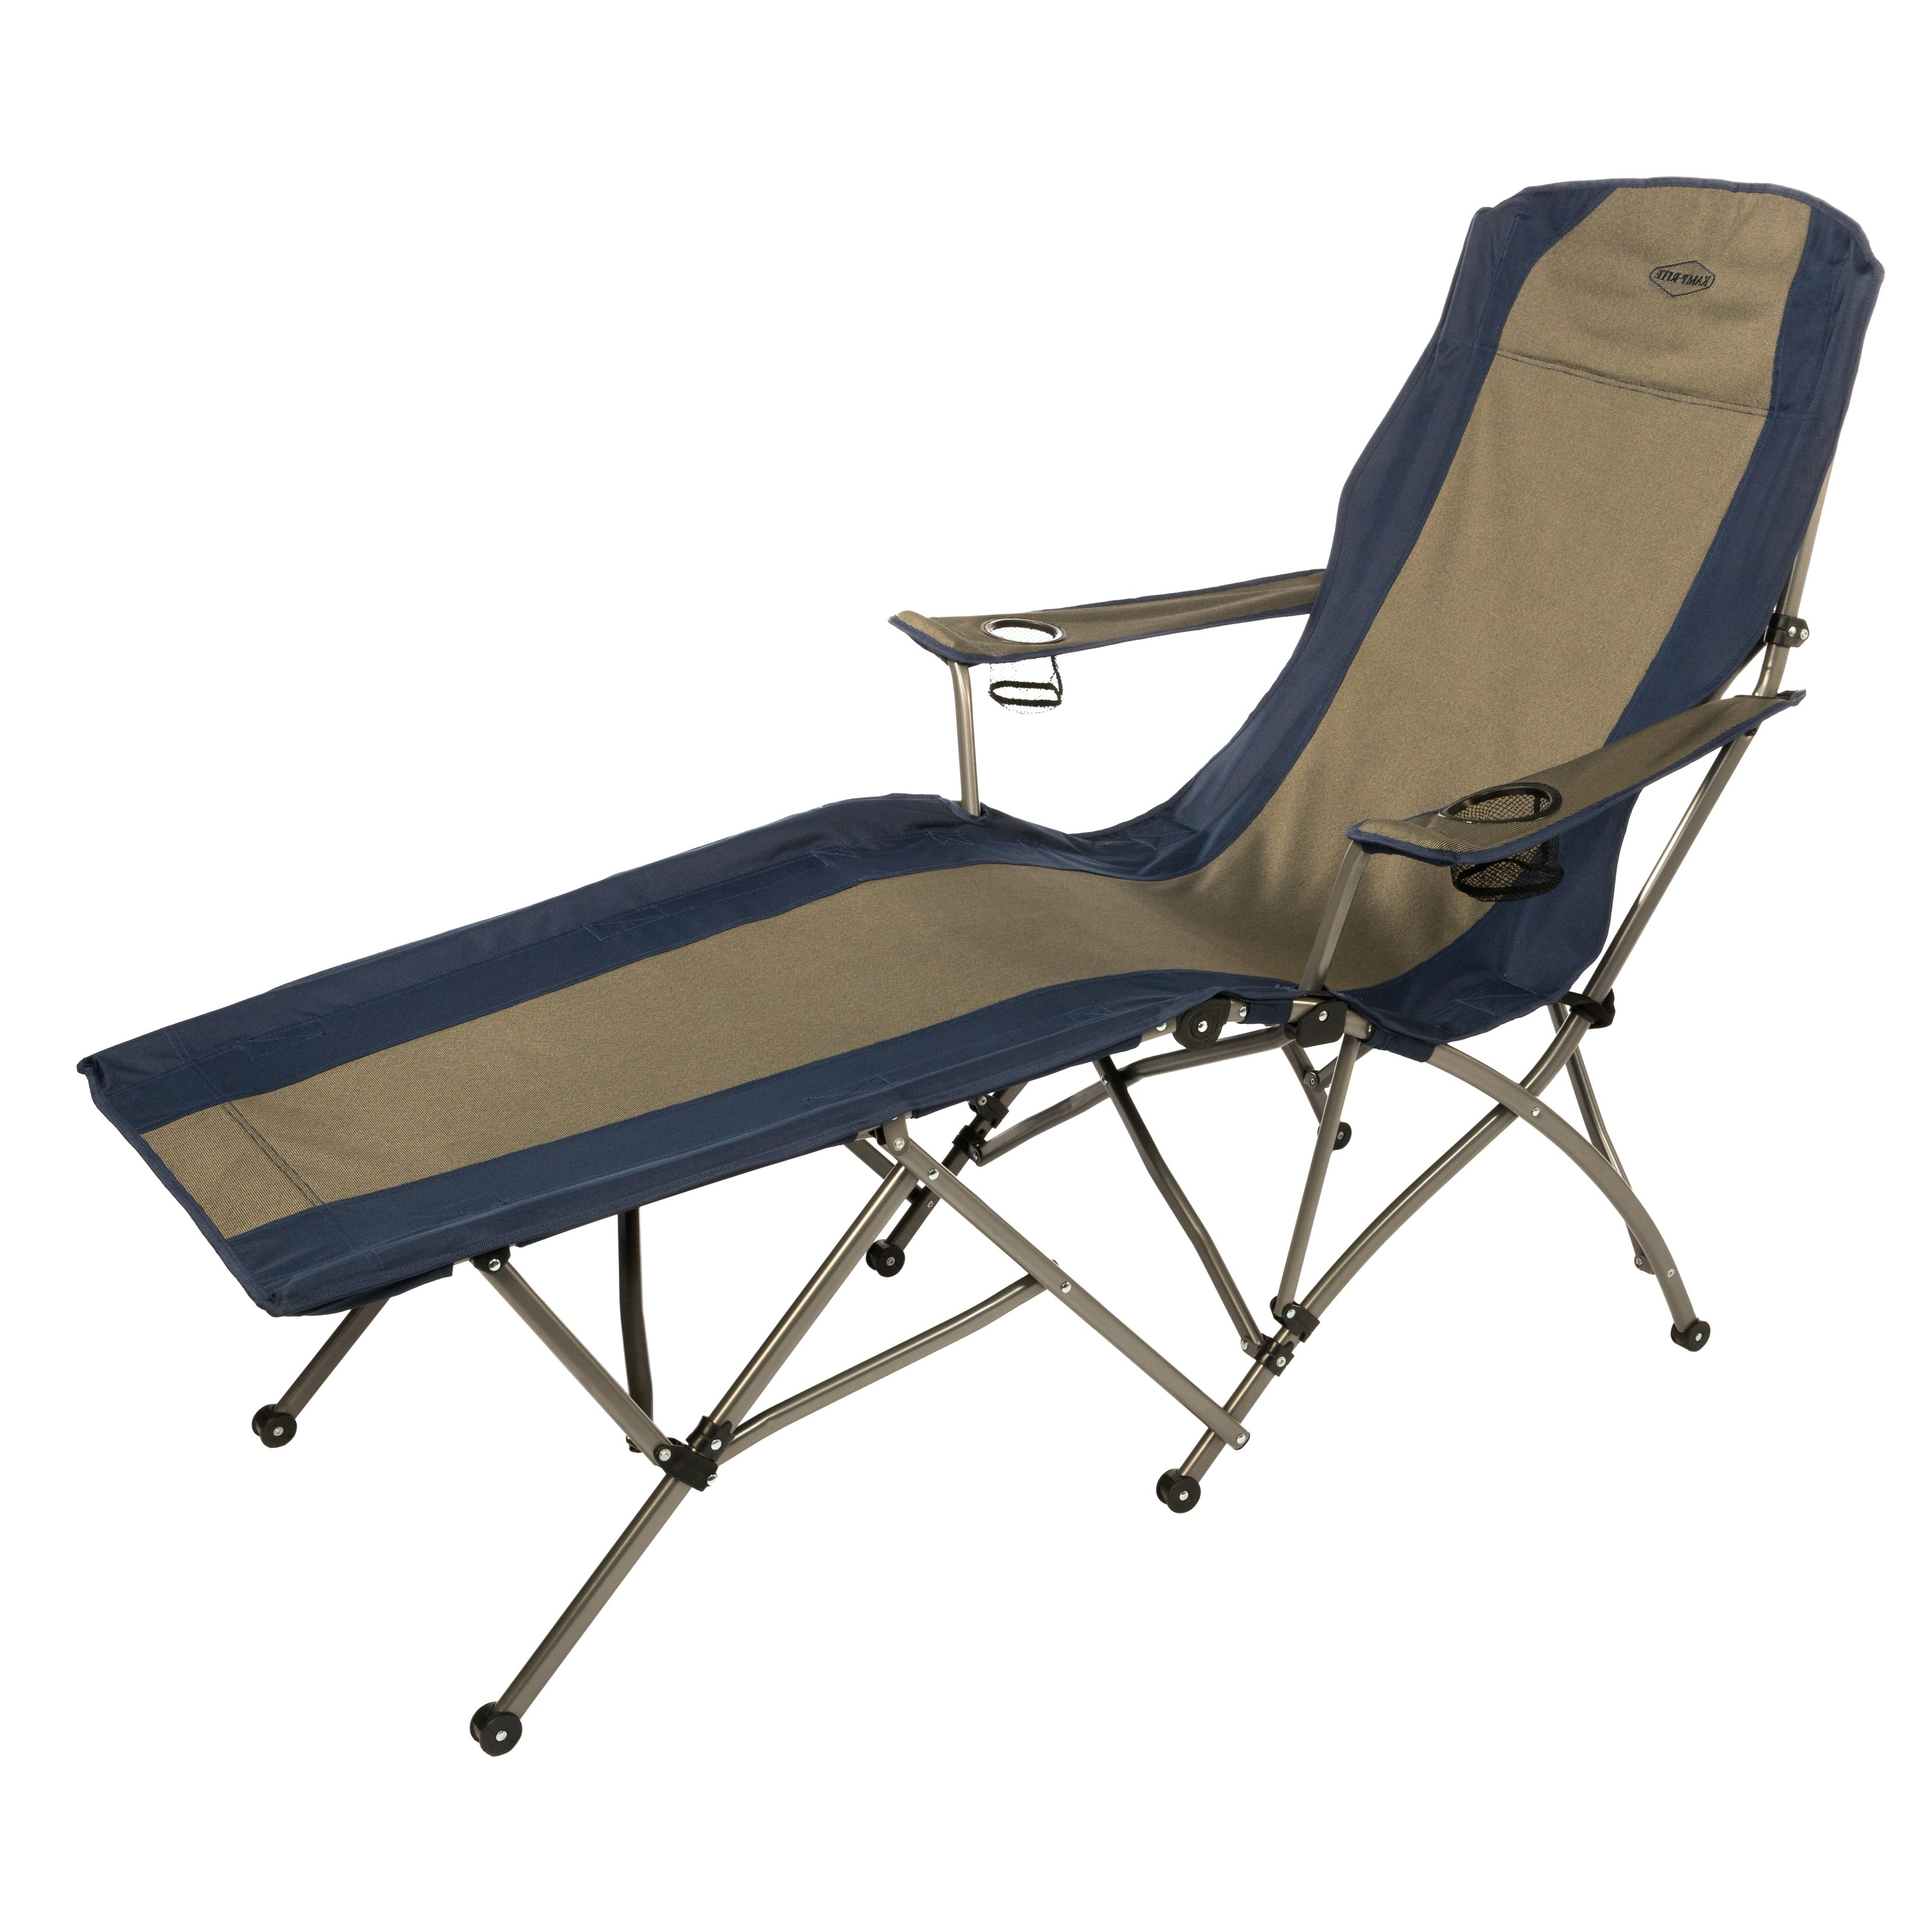 Preferred Chaise Lounge Chairs With Face Hole Inside Tanning Lounge Chair With Face Hole • Lounge Chairs Ideas (View 11 of 15)